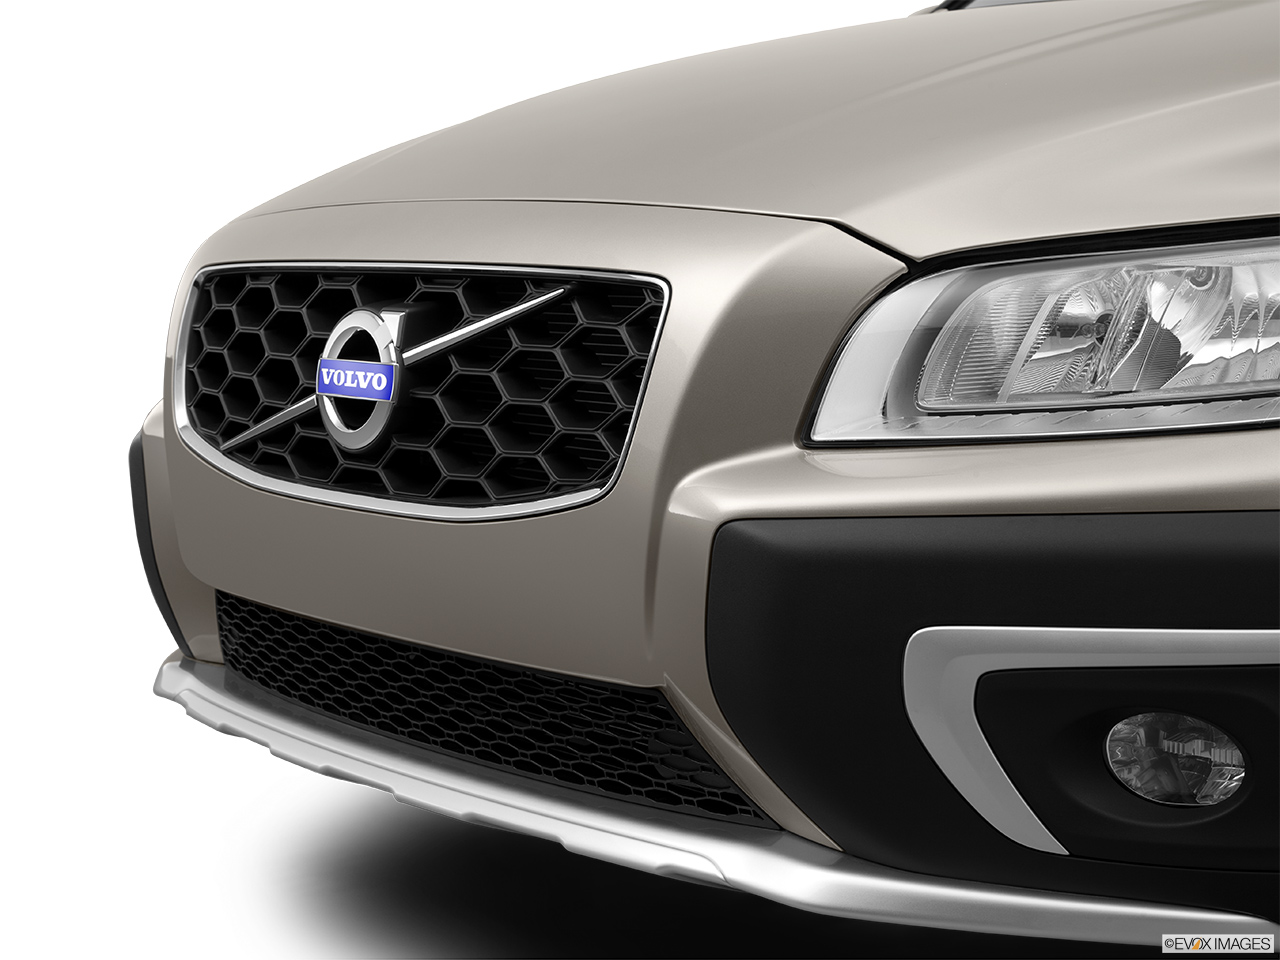 2014 Volvo XC70 3.2 AWD Premier Plus Close up of Grill.